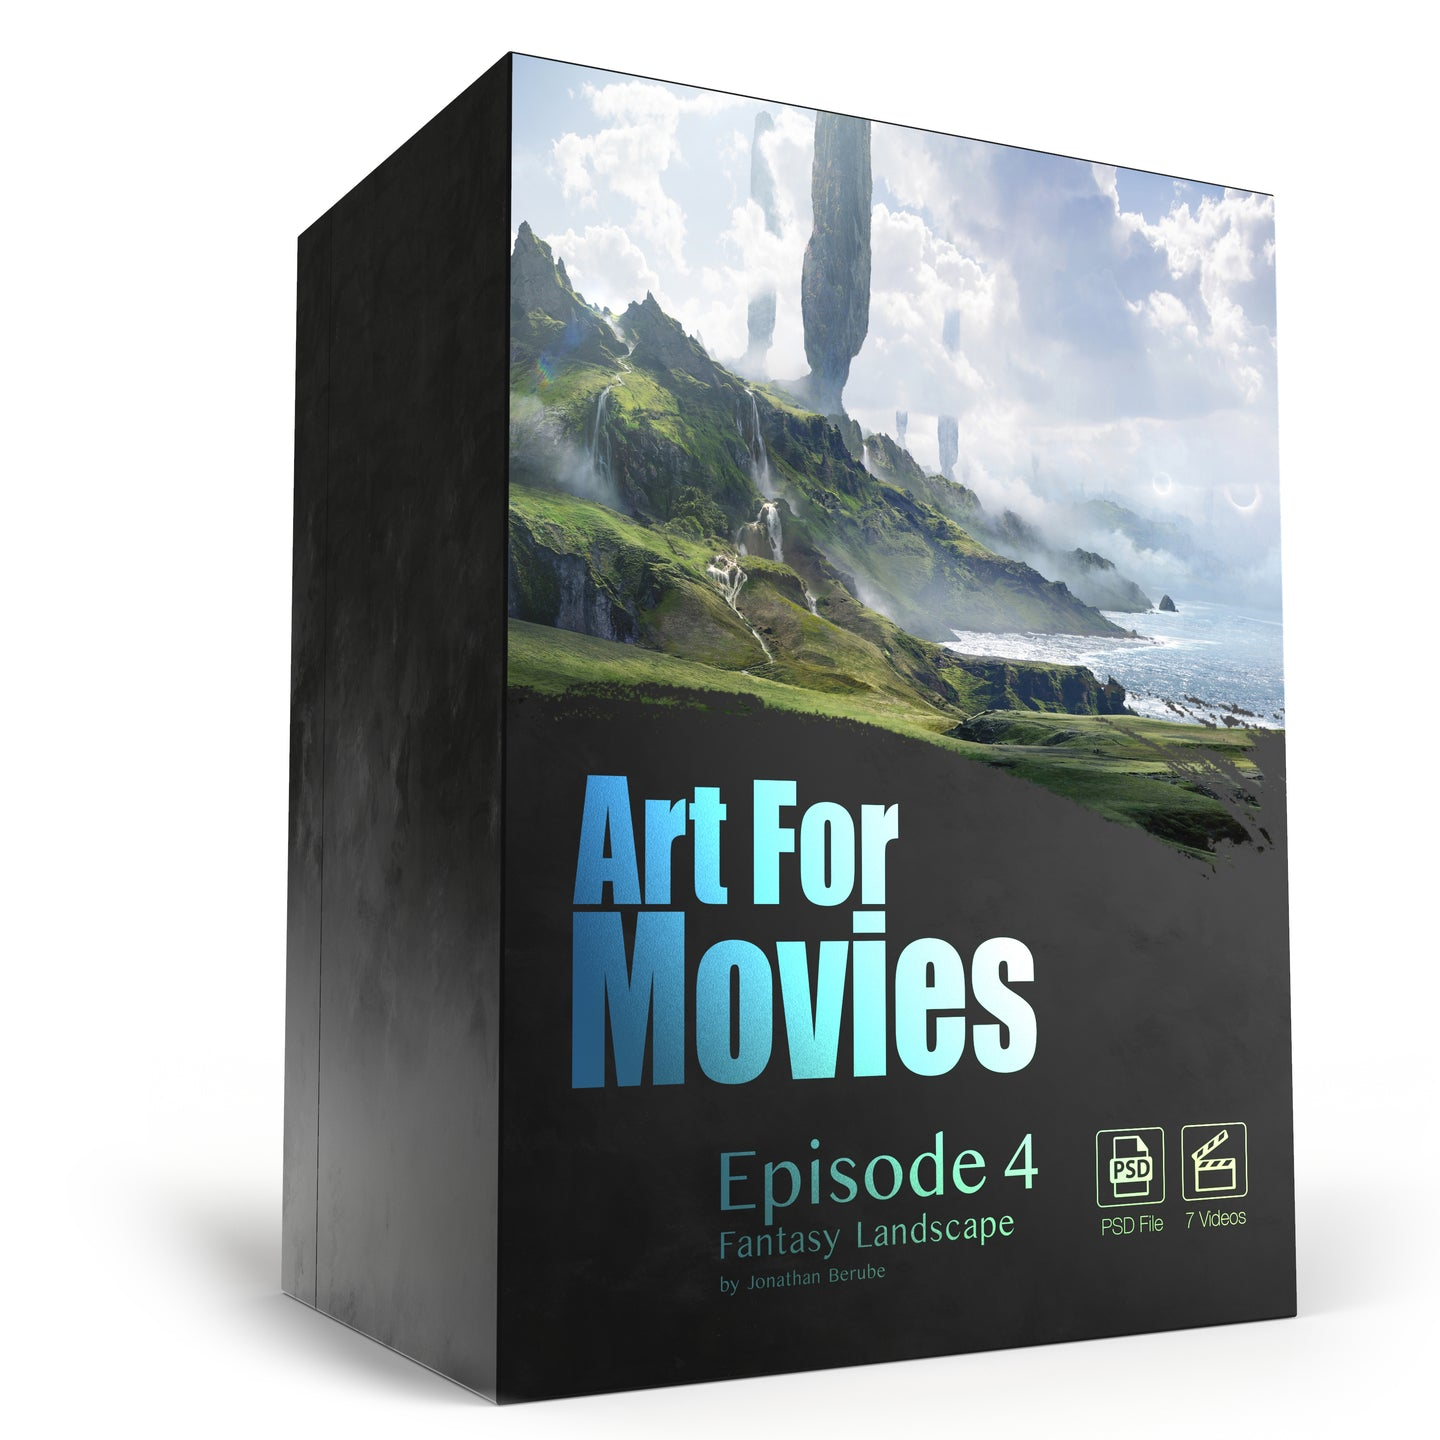 Art For Movies - Episode 4 Fantasy Landscape